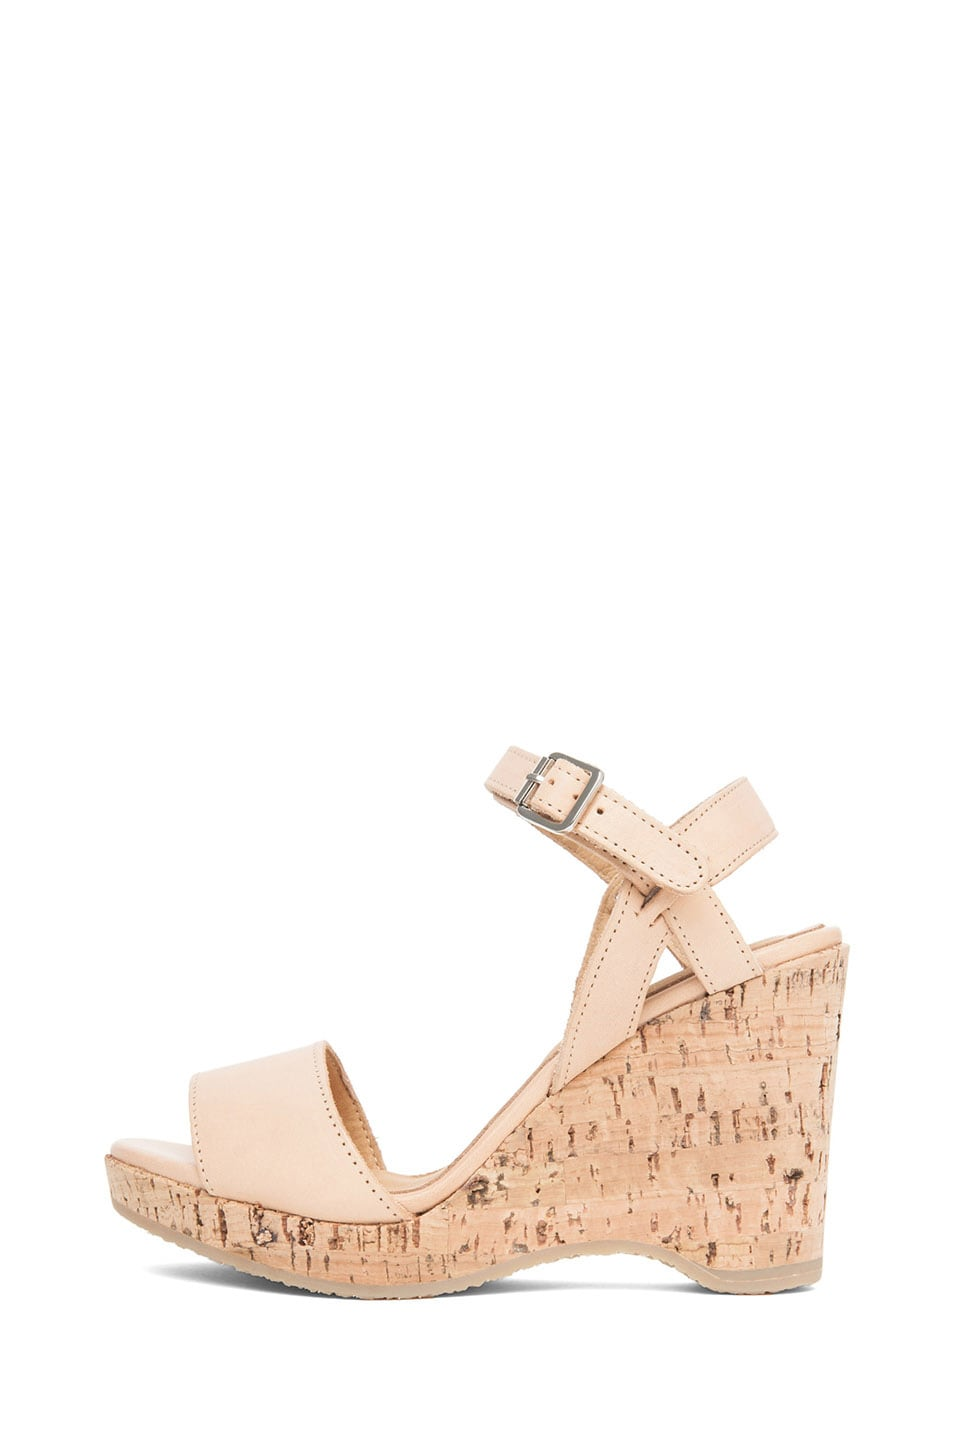 Image 1 of A.P.C. Lisse Calfskin Leather Sandals in Beige Rose